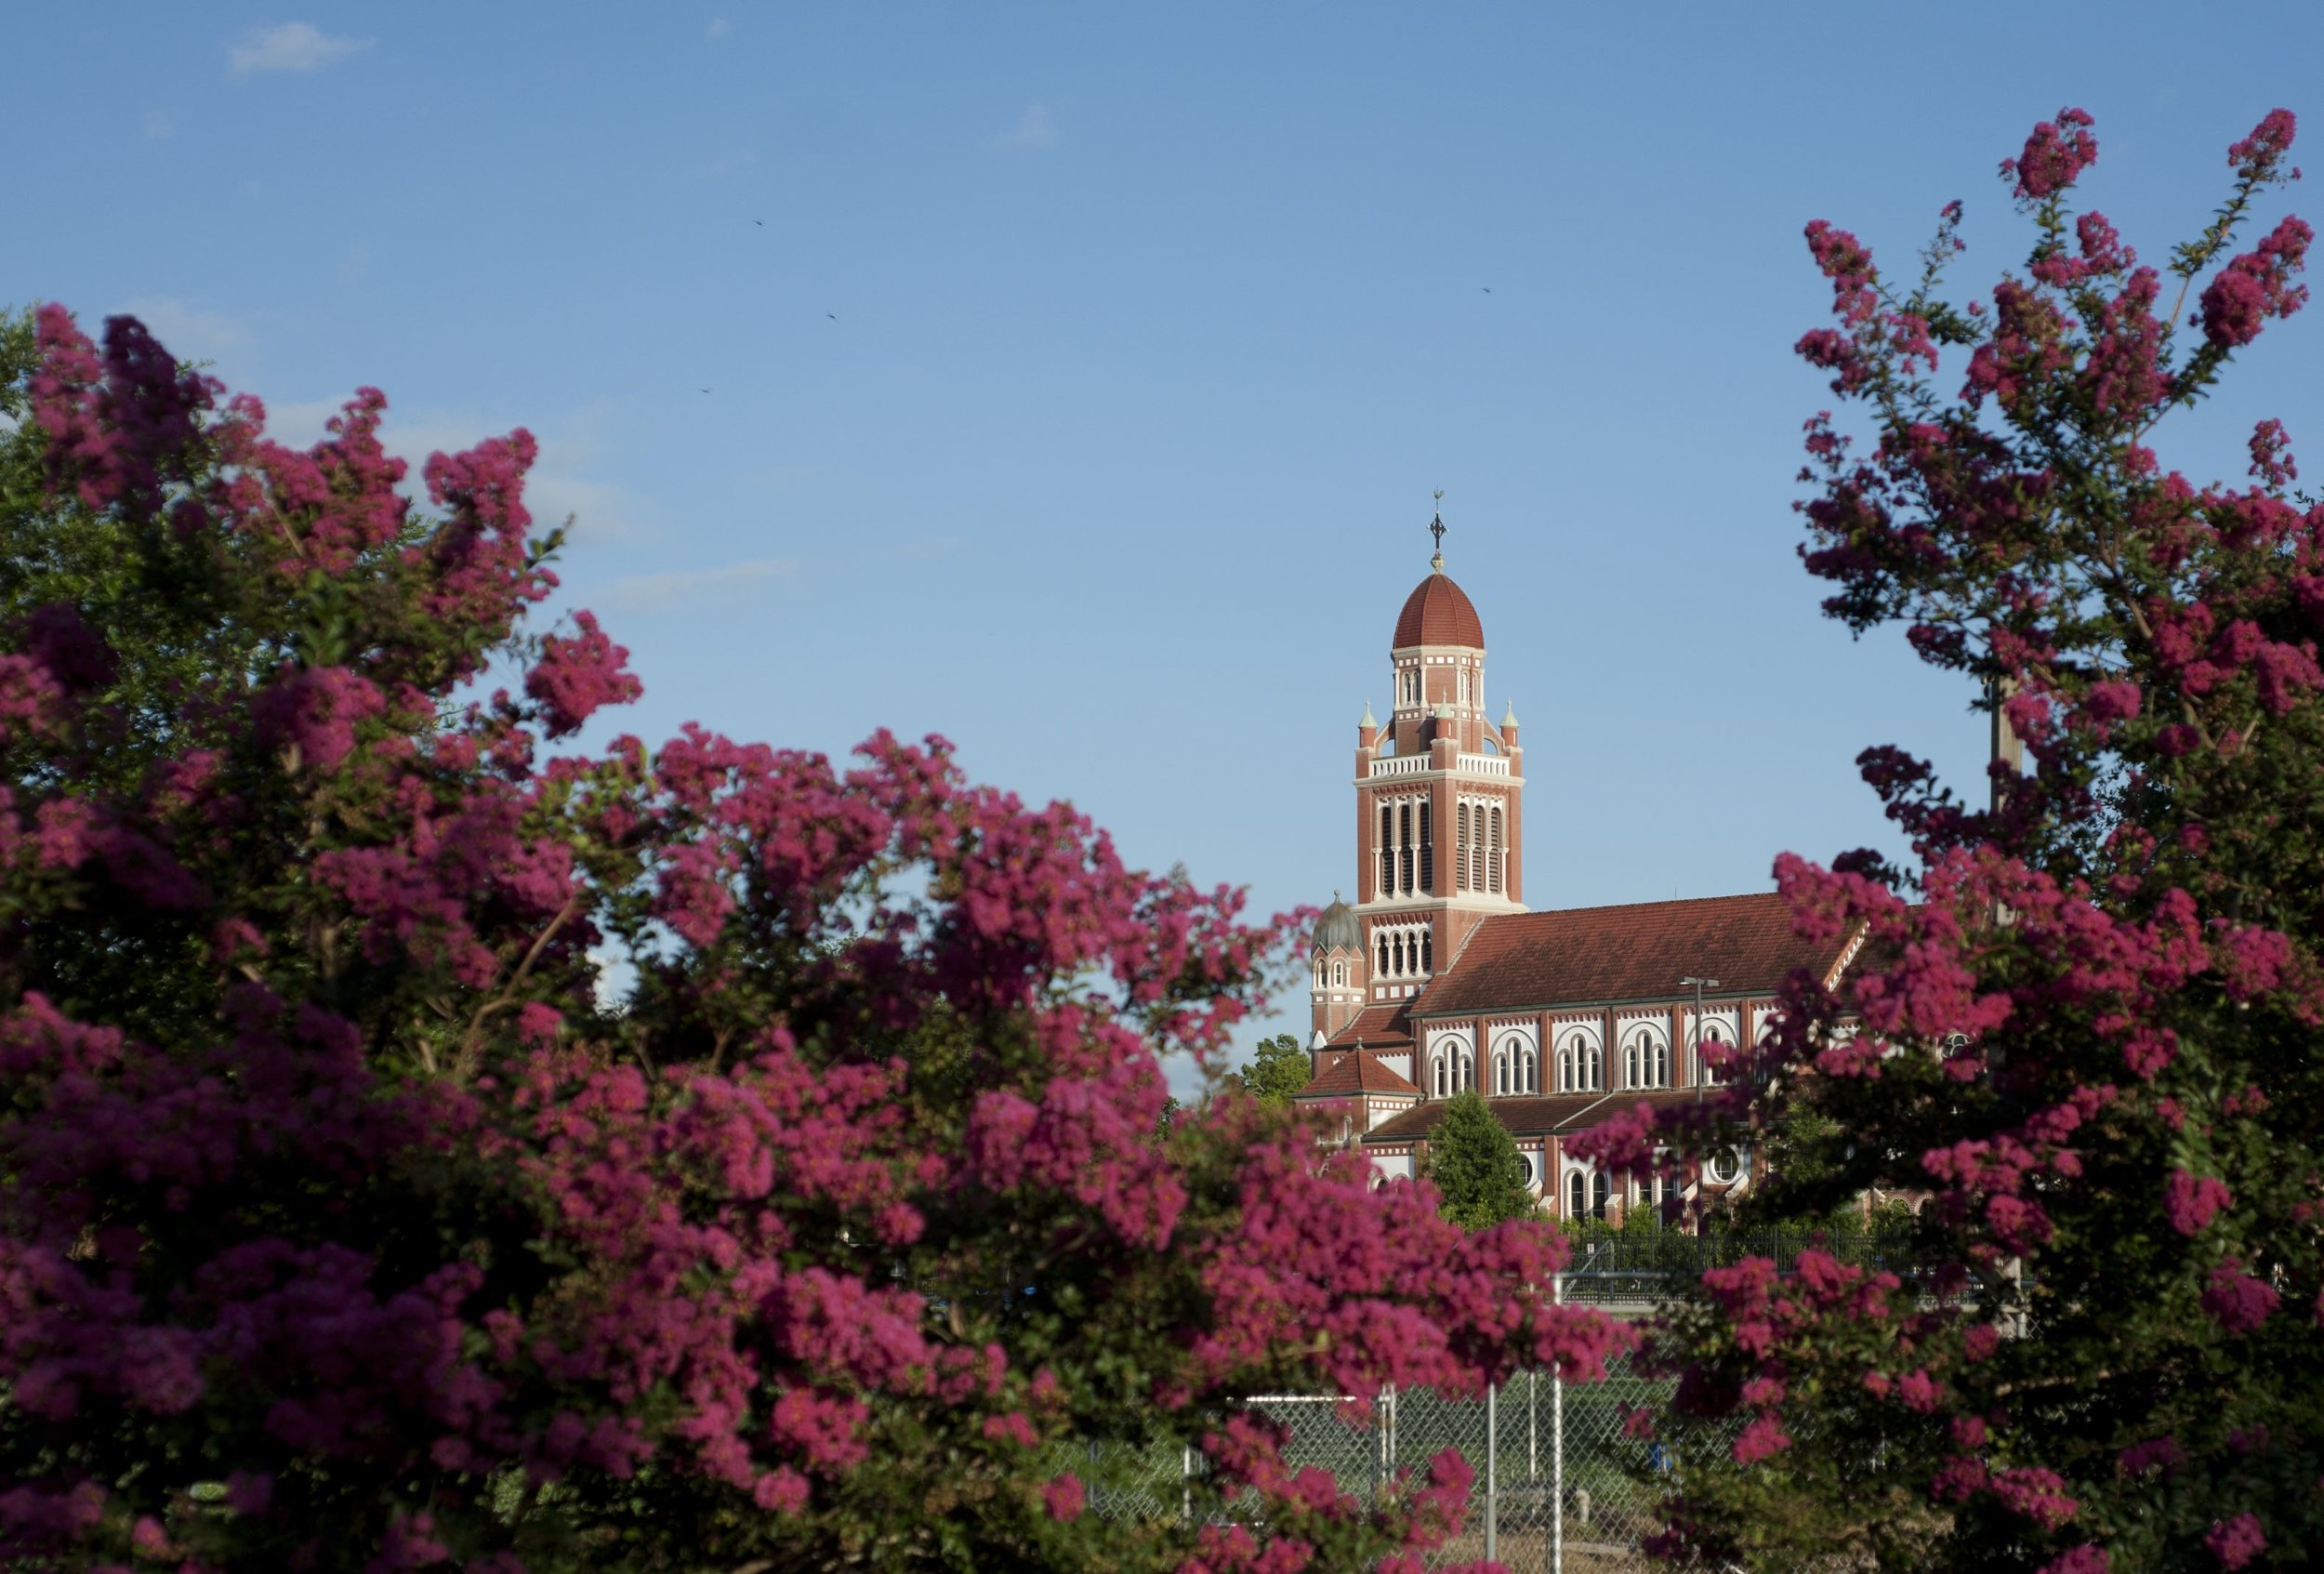 Photo by Denny Culbert, Provided by Downtown Lafayette Unlimited.